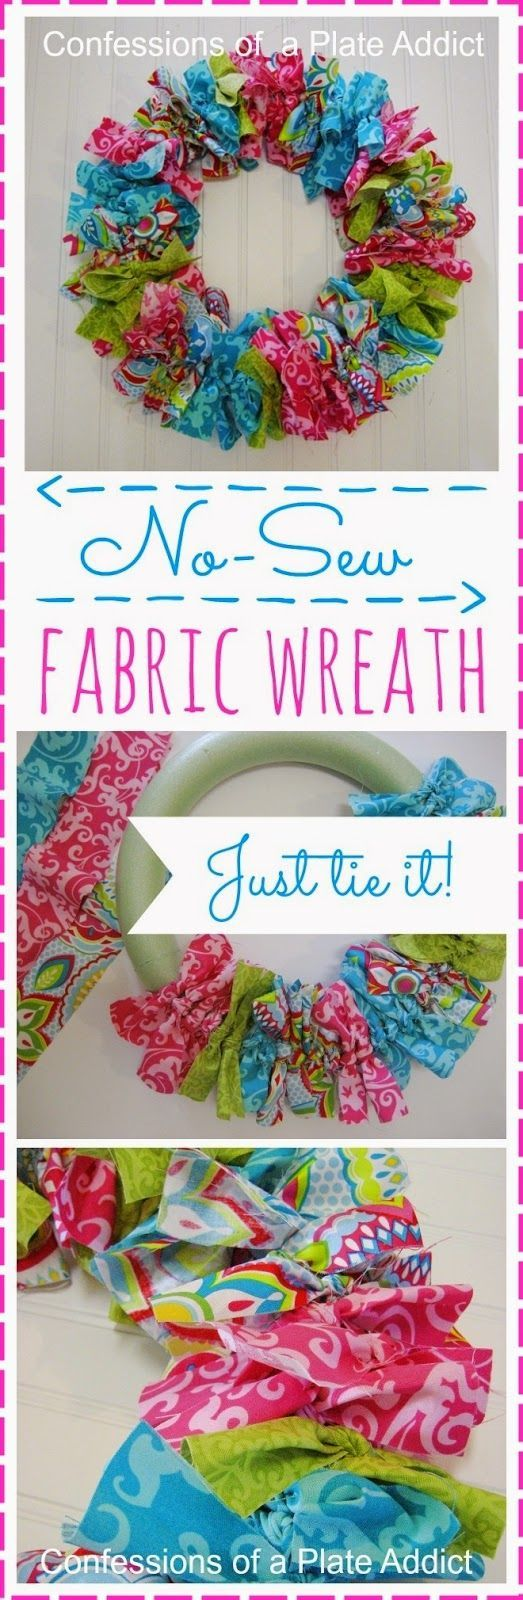 CONFESSIONS OF A PLATE ADDICT Easy No-Sew Fabric Wreath